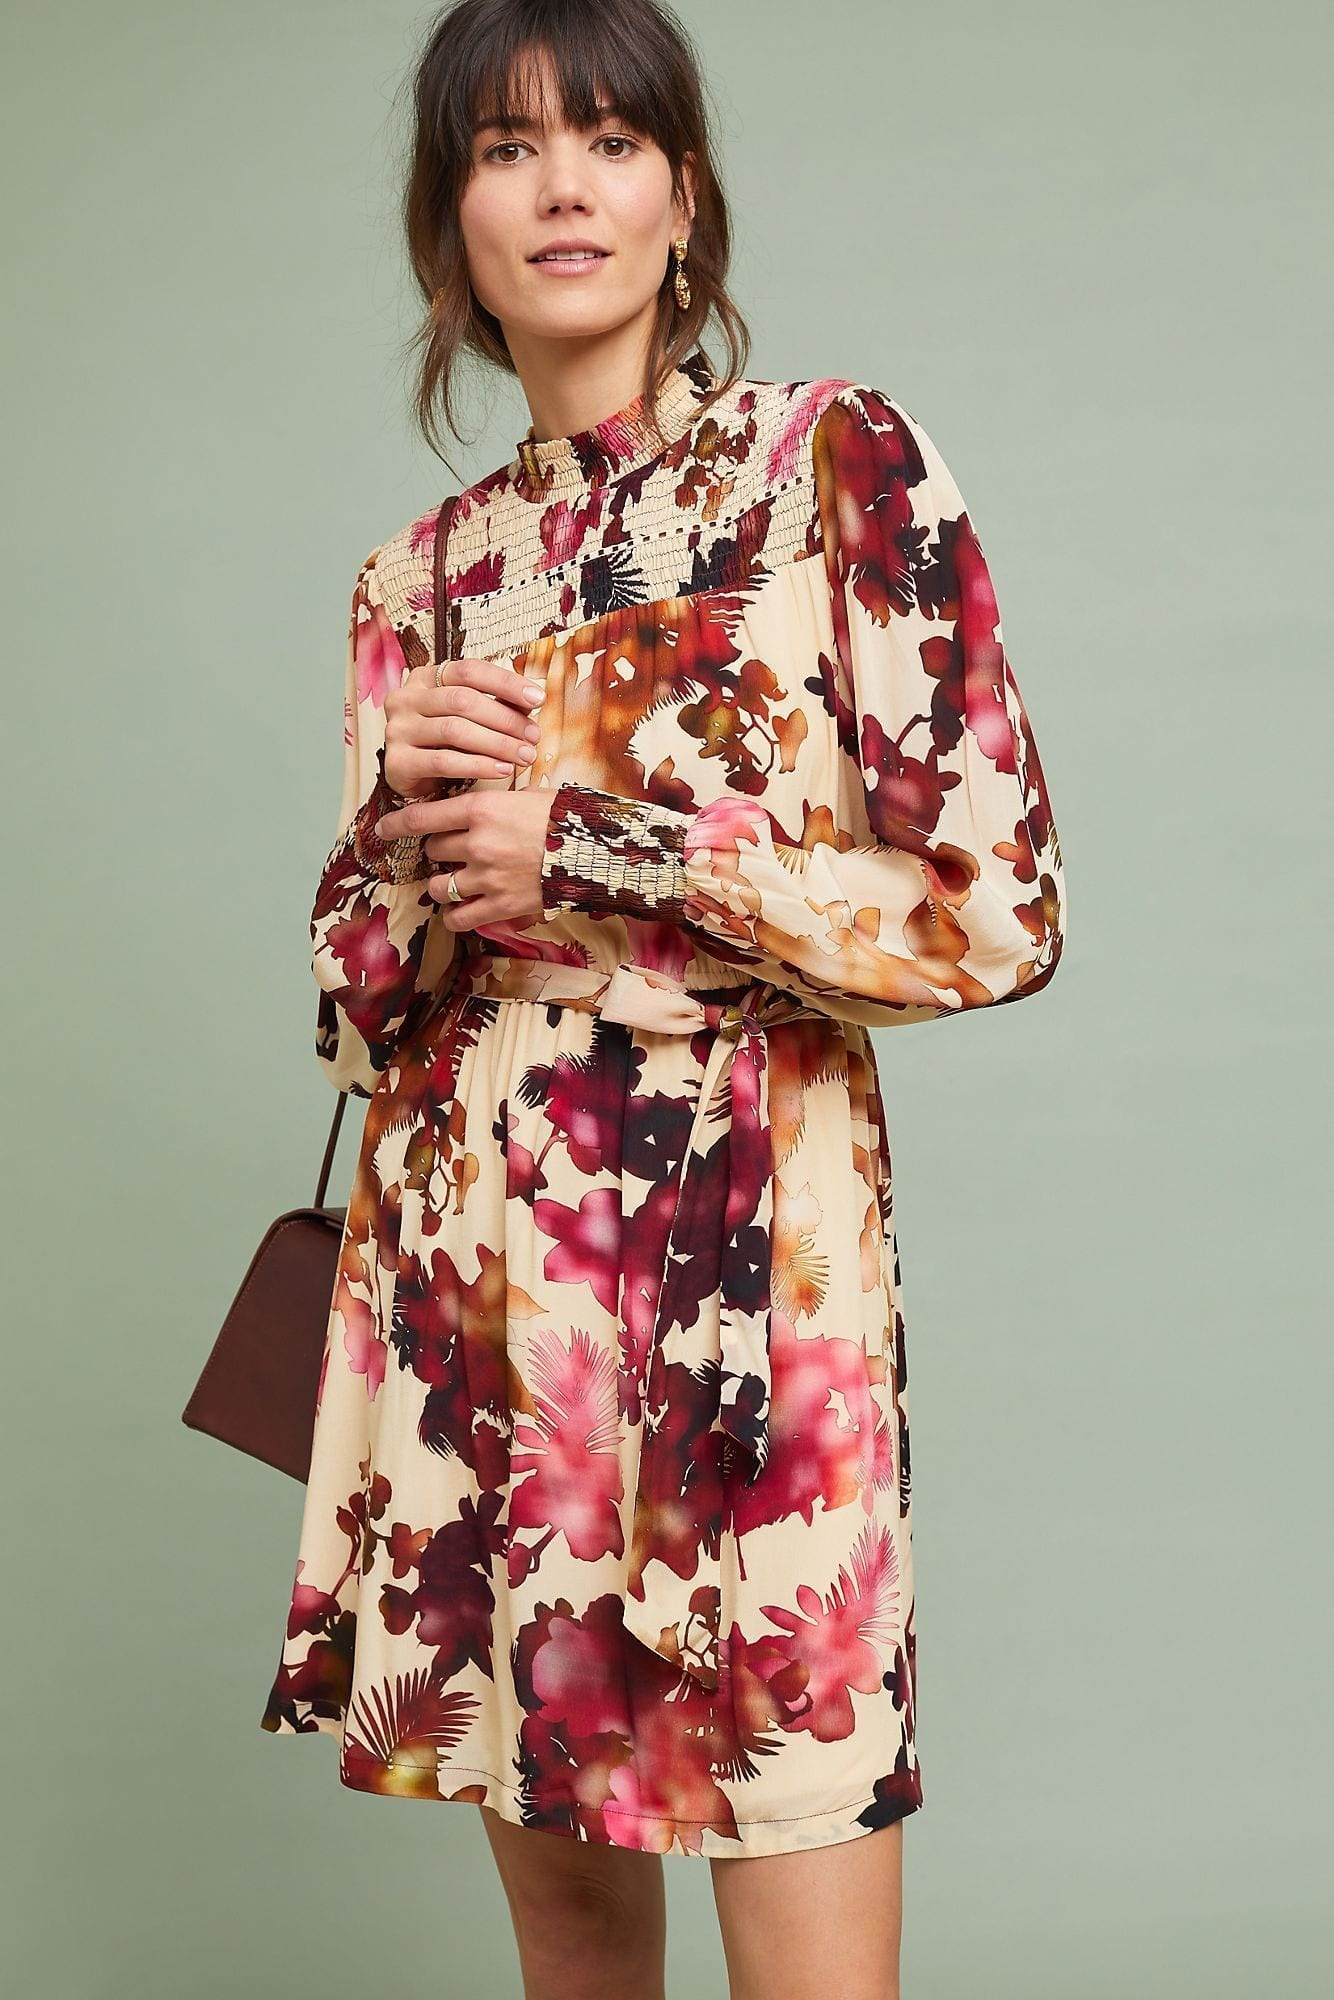 72b2ed6ec7af ANTHROPOLOGIE Dubois Embroidered Tunic Rose Dress. $150. ANTHROPOLOGIE  Watercolor Hibiscus Neutral Dress